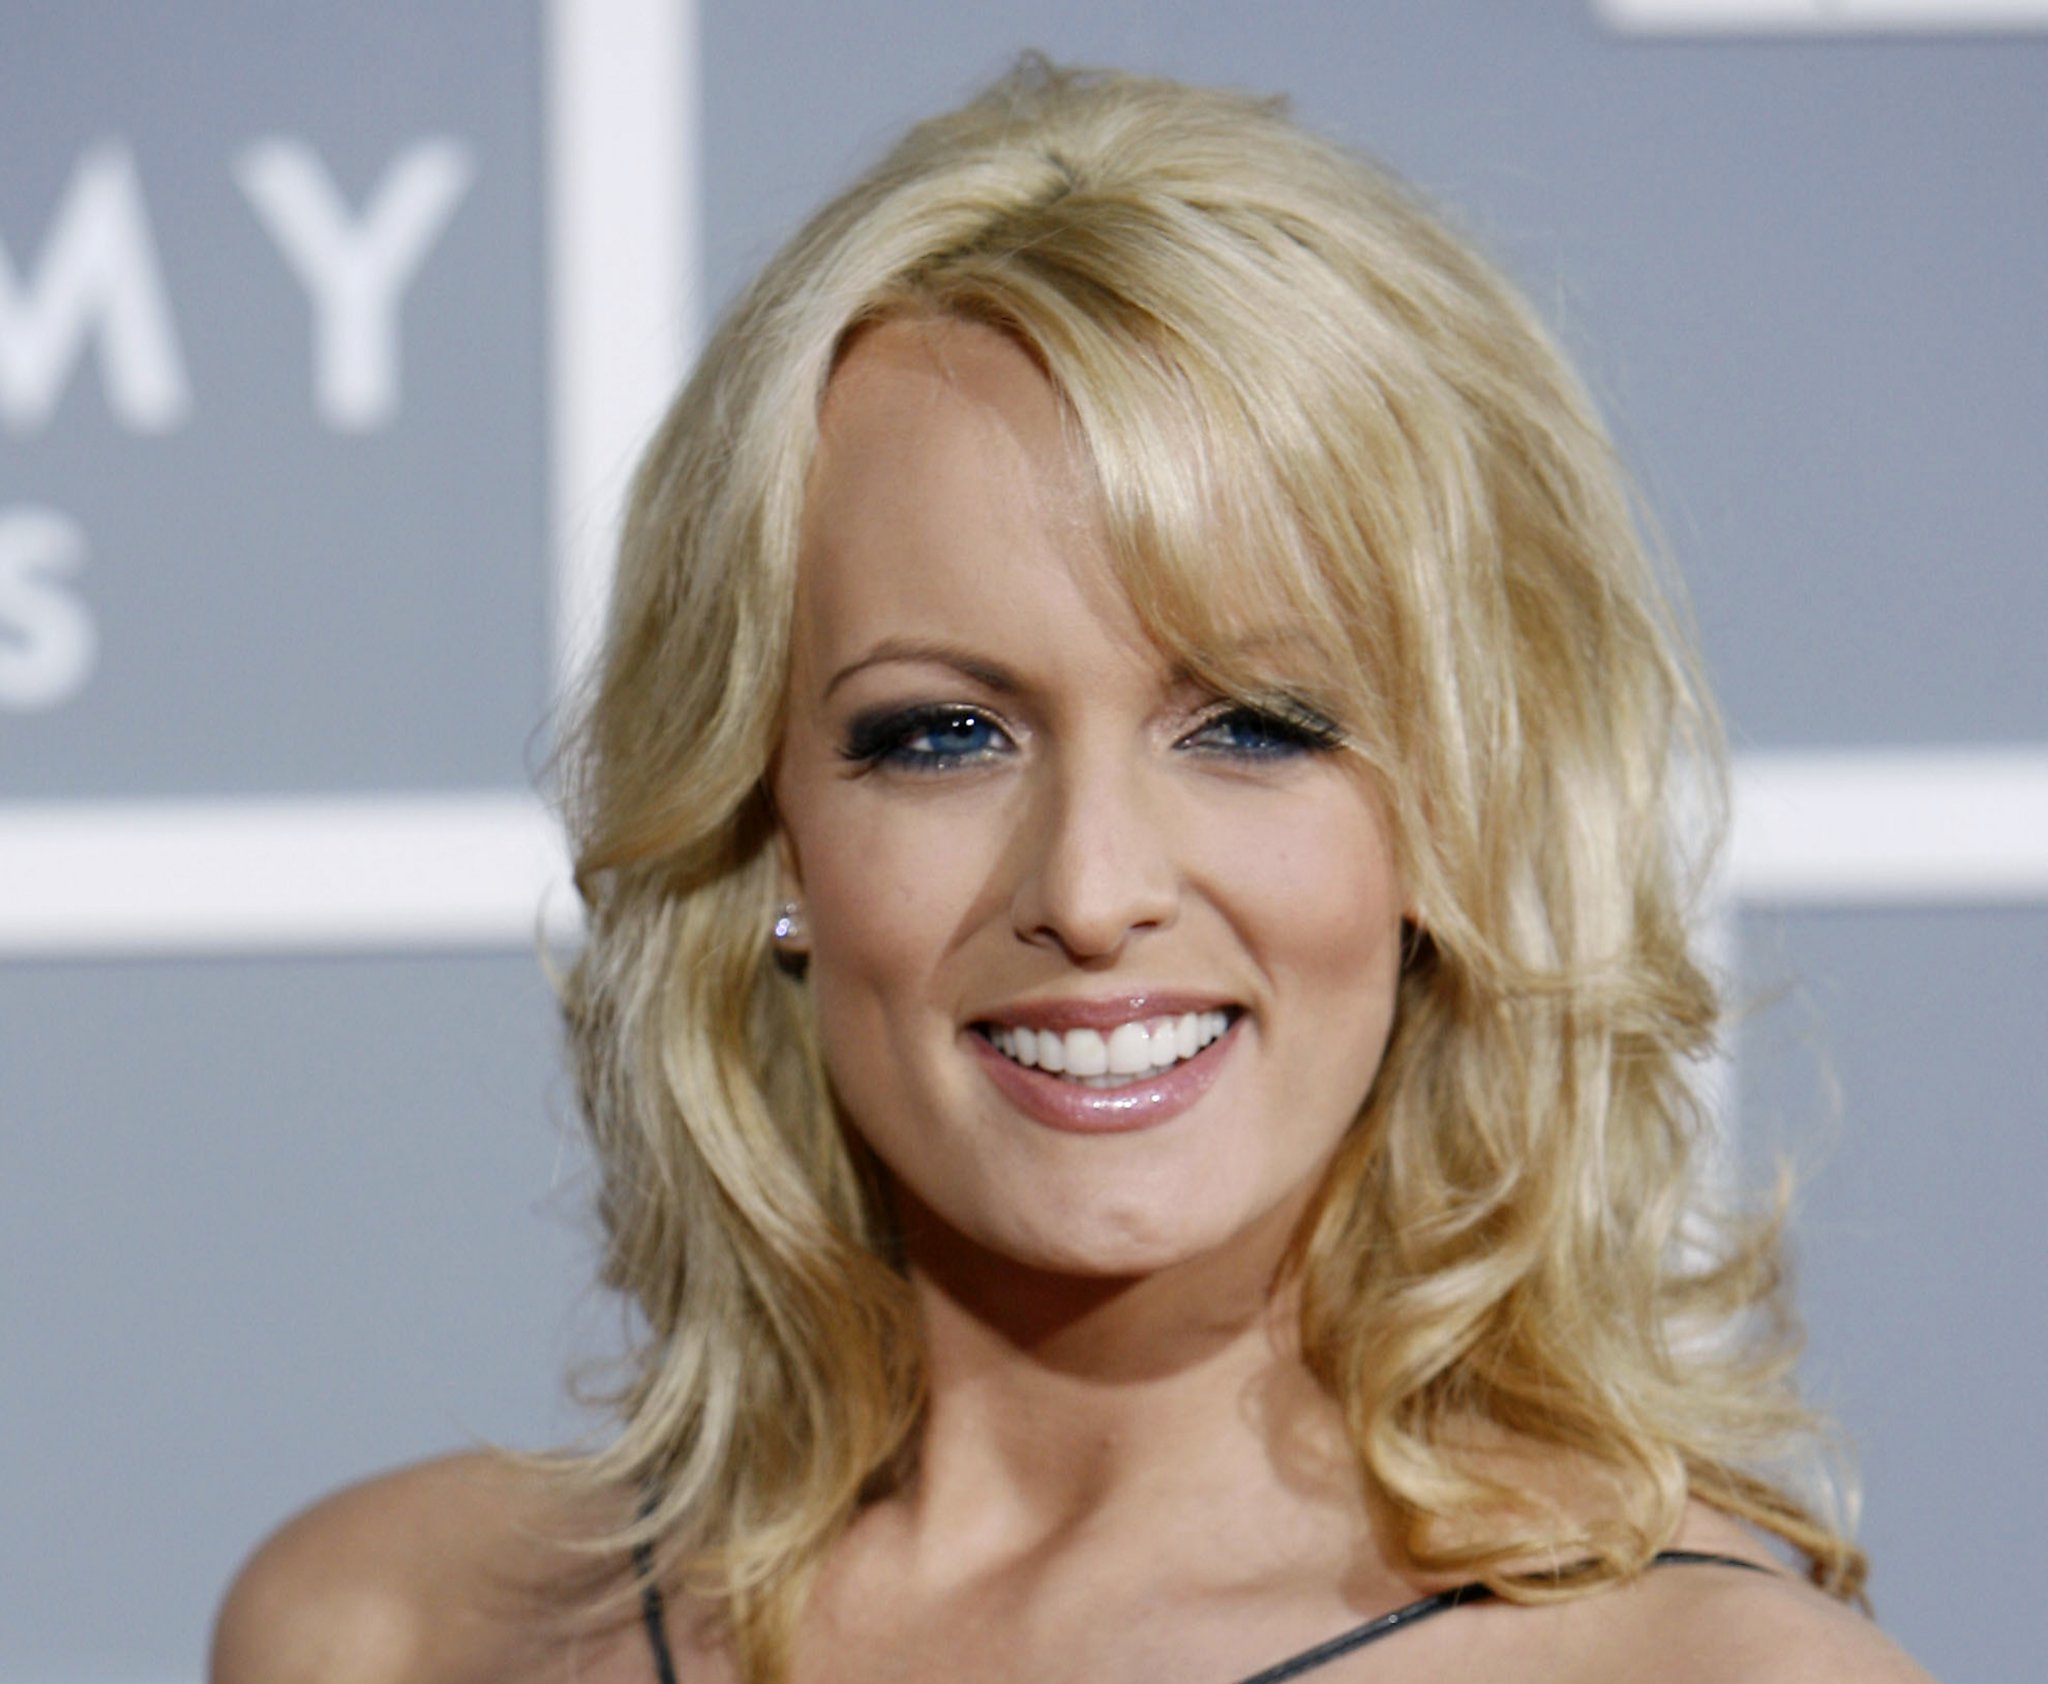 President Donald Trump cast doubts on a sketch released by porn star Stormy Daniels purporting to be an image of a man who threatened her and her daughter